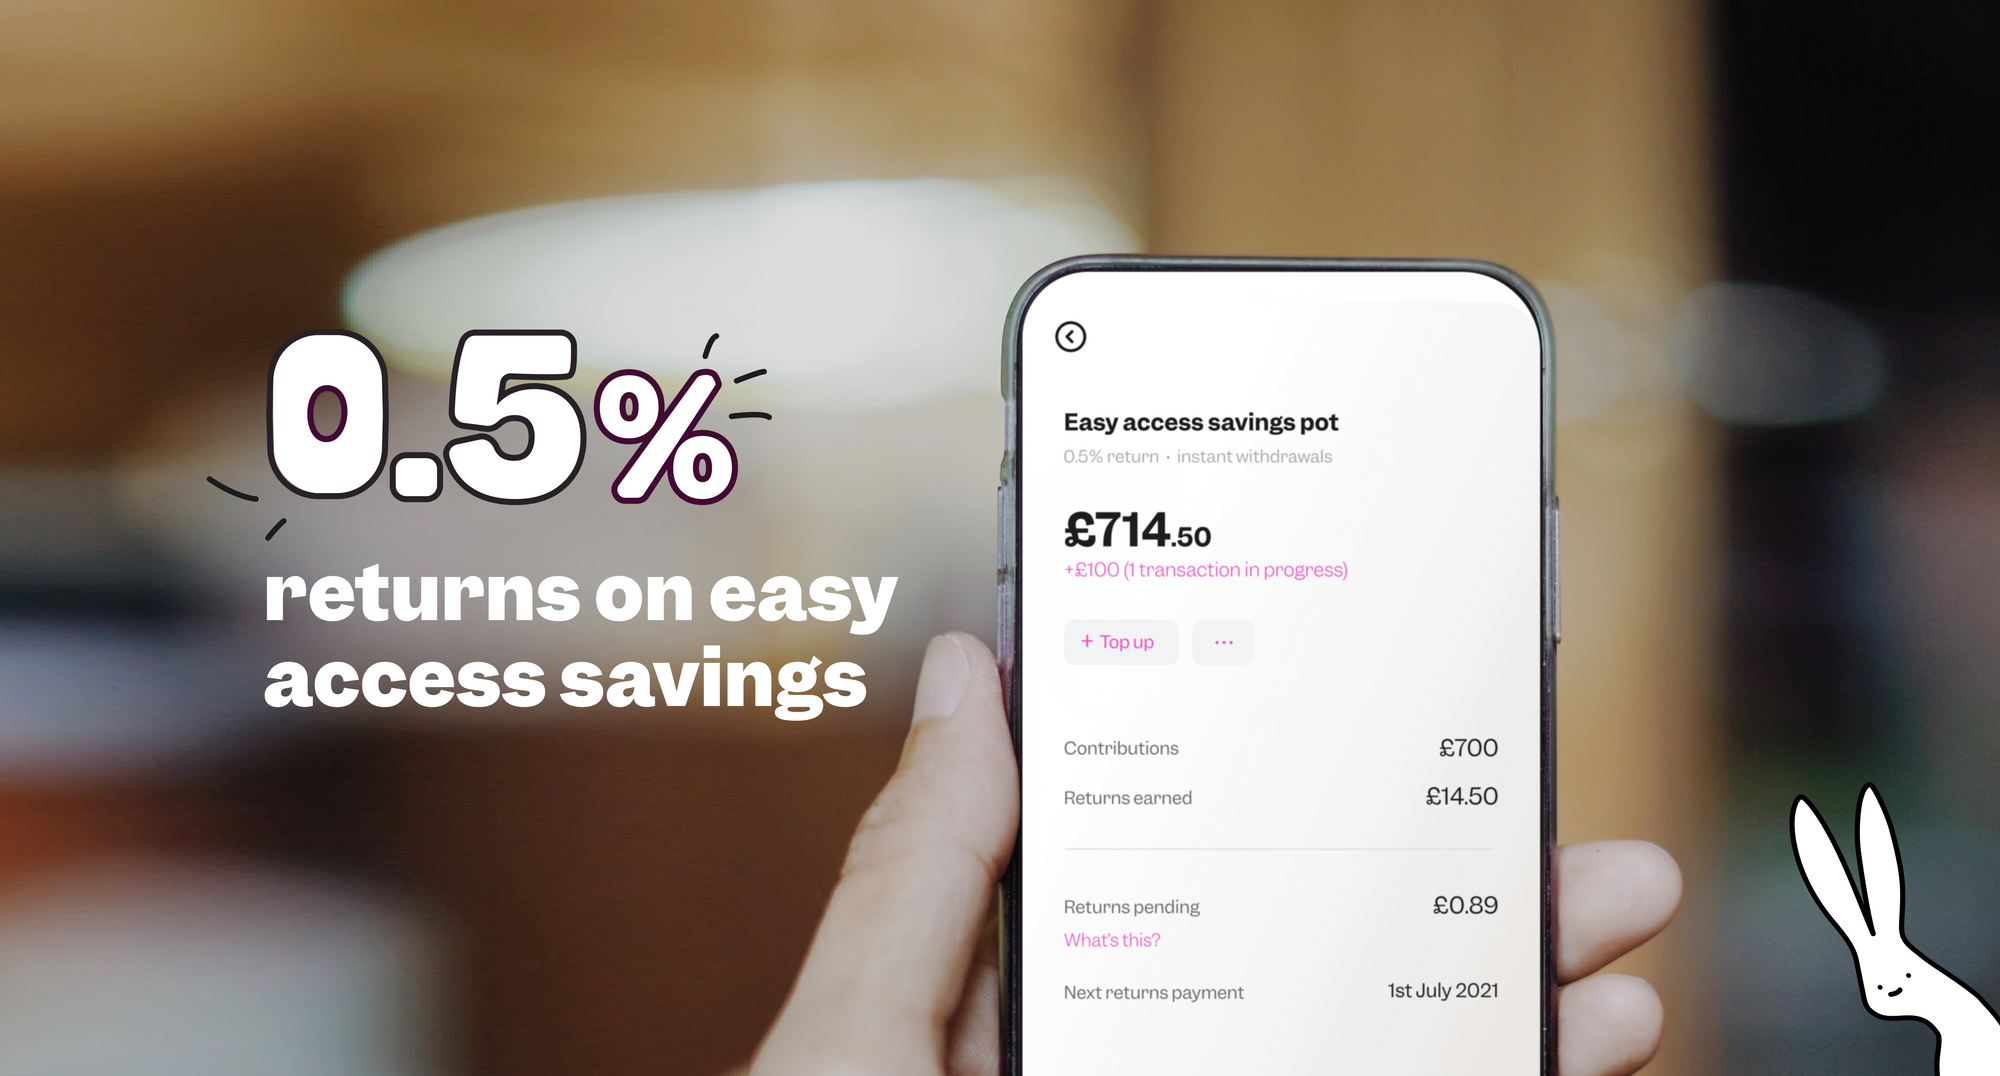 Get 0.5% on easy access savings